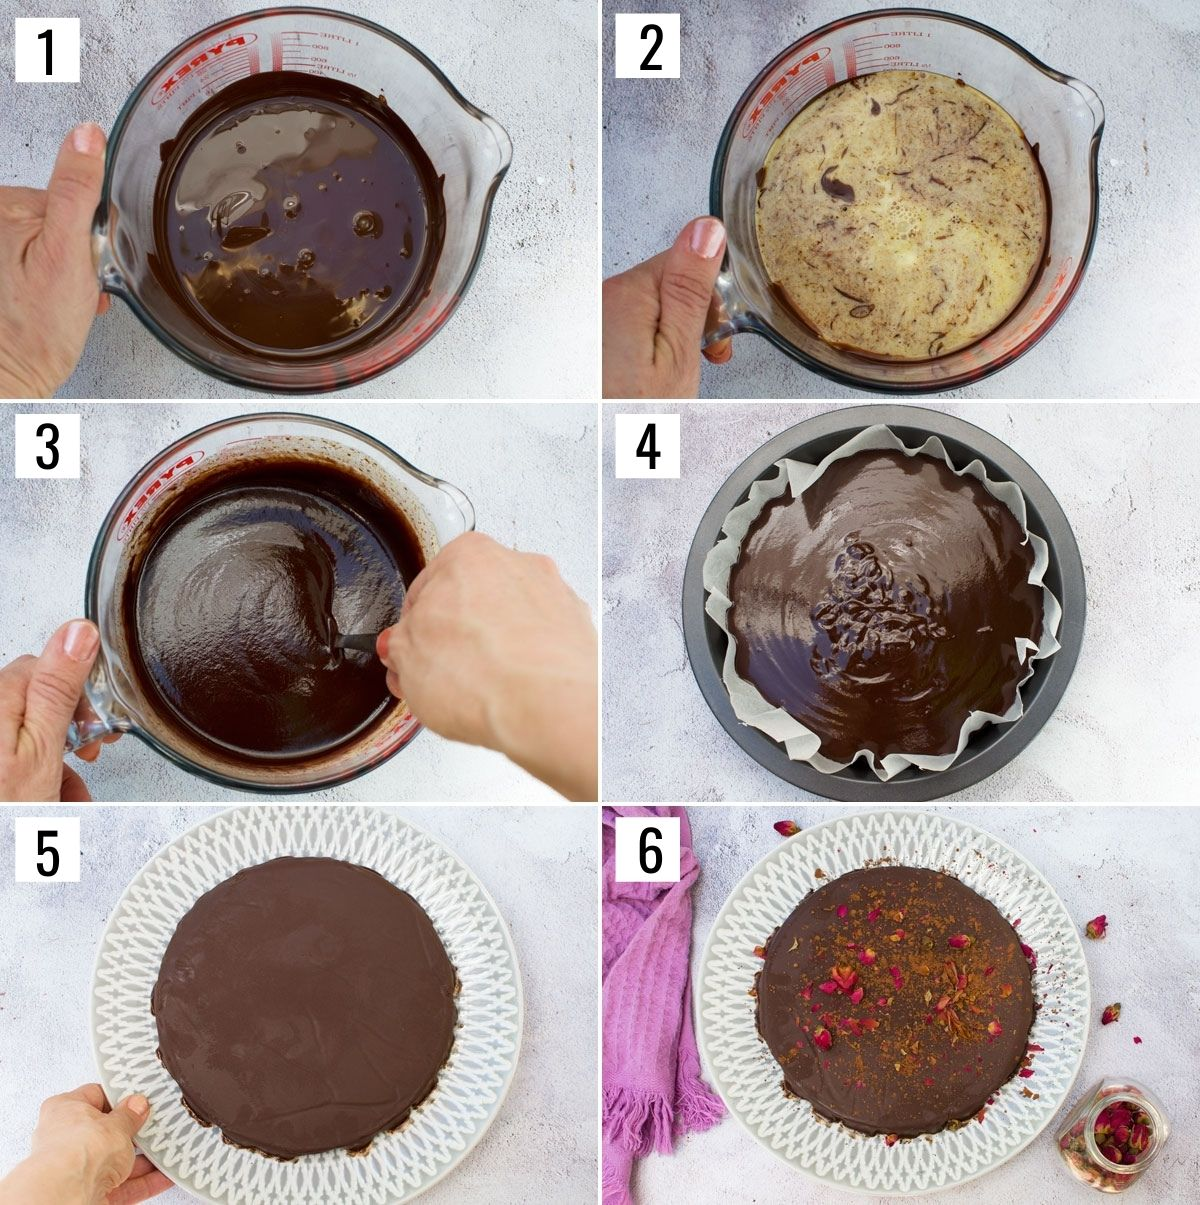 Series of 6 process images showing how to make a no bake chocolate truffle cake: Melt chocolate, add warm cream and butter to it, Add salt and rosewater and stir, pour into baking pan, let set in fridge, decorate with rose buds.